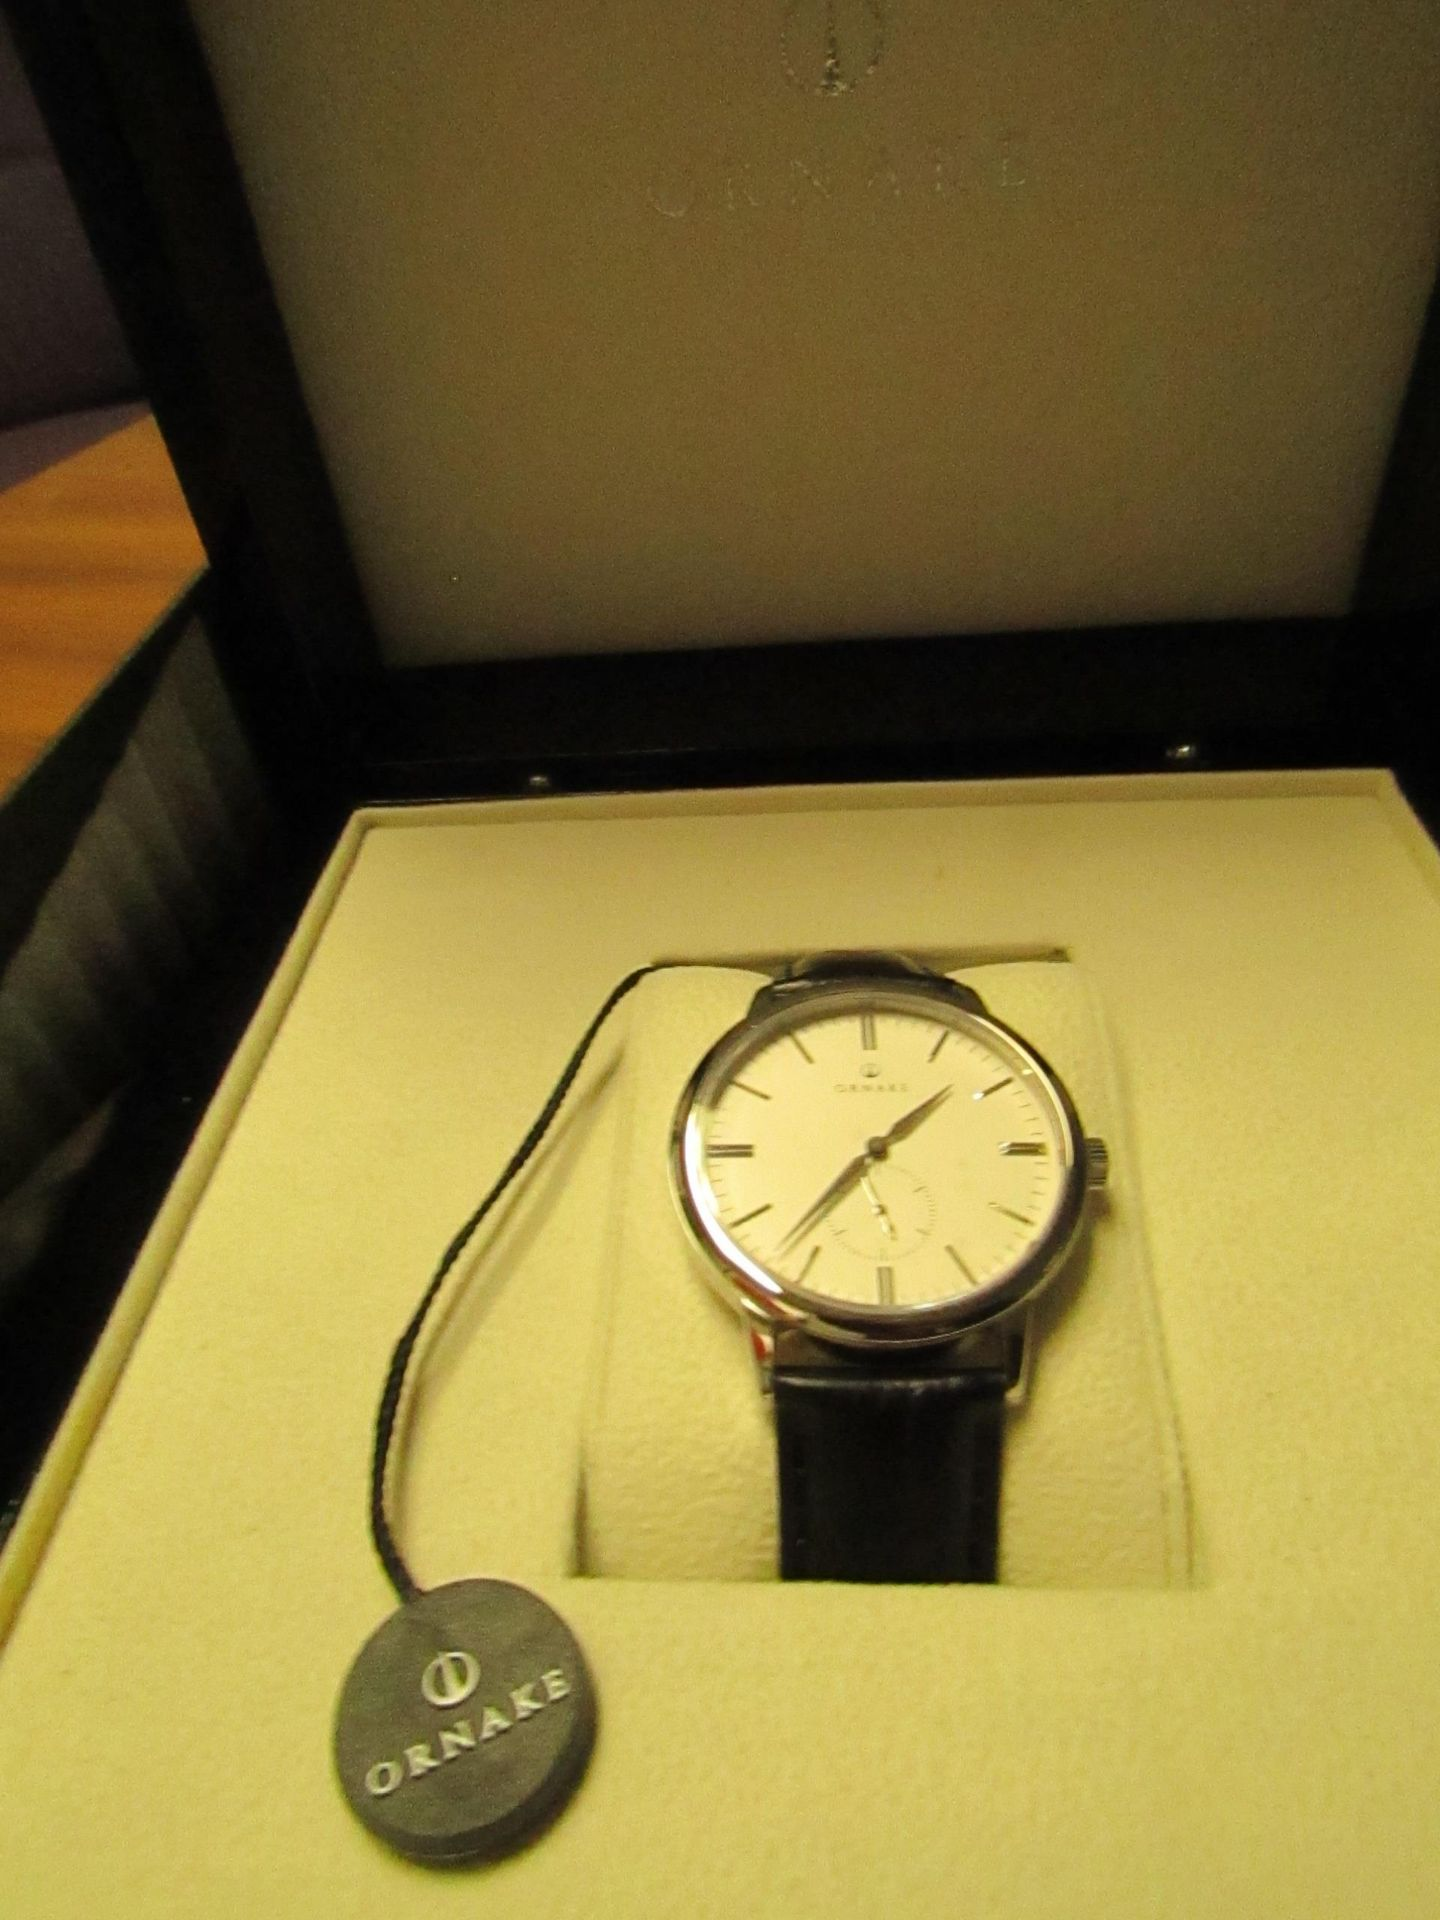 Ornake watch, miyota movement, white and silver with black leather strap, new, Boxed and ticking.